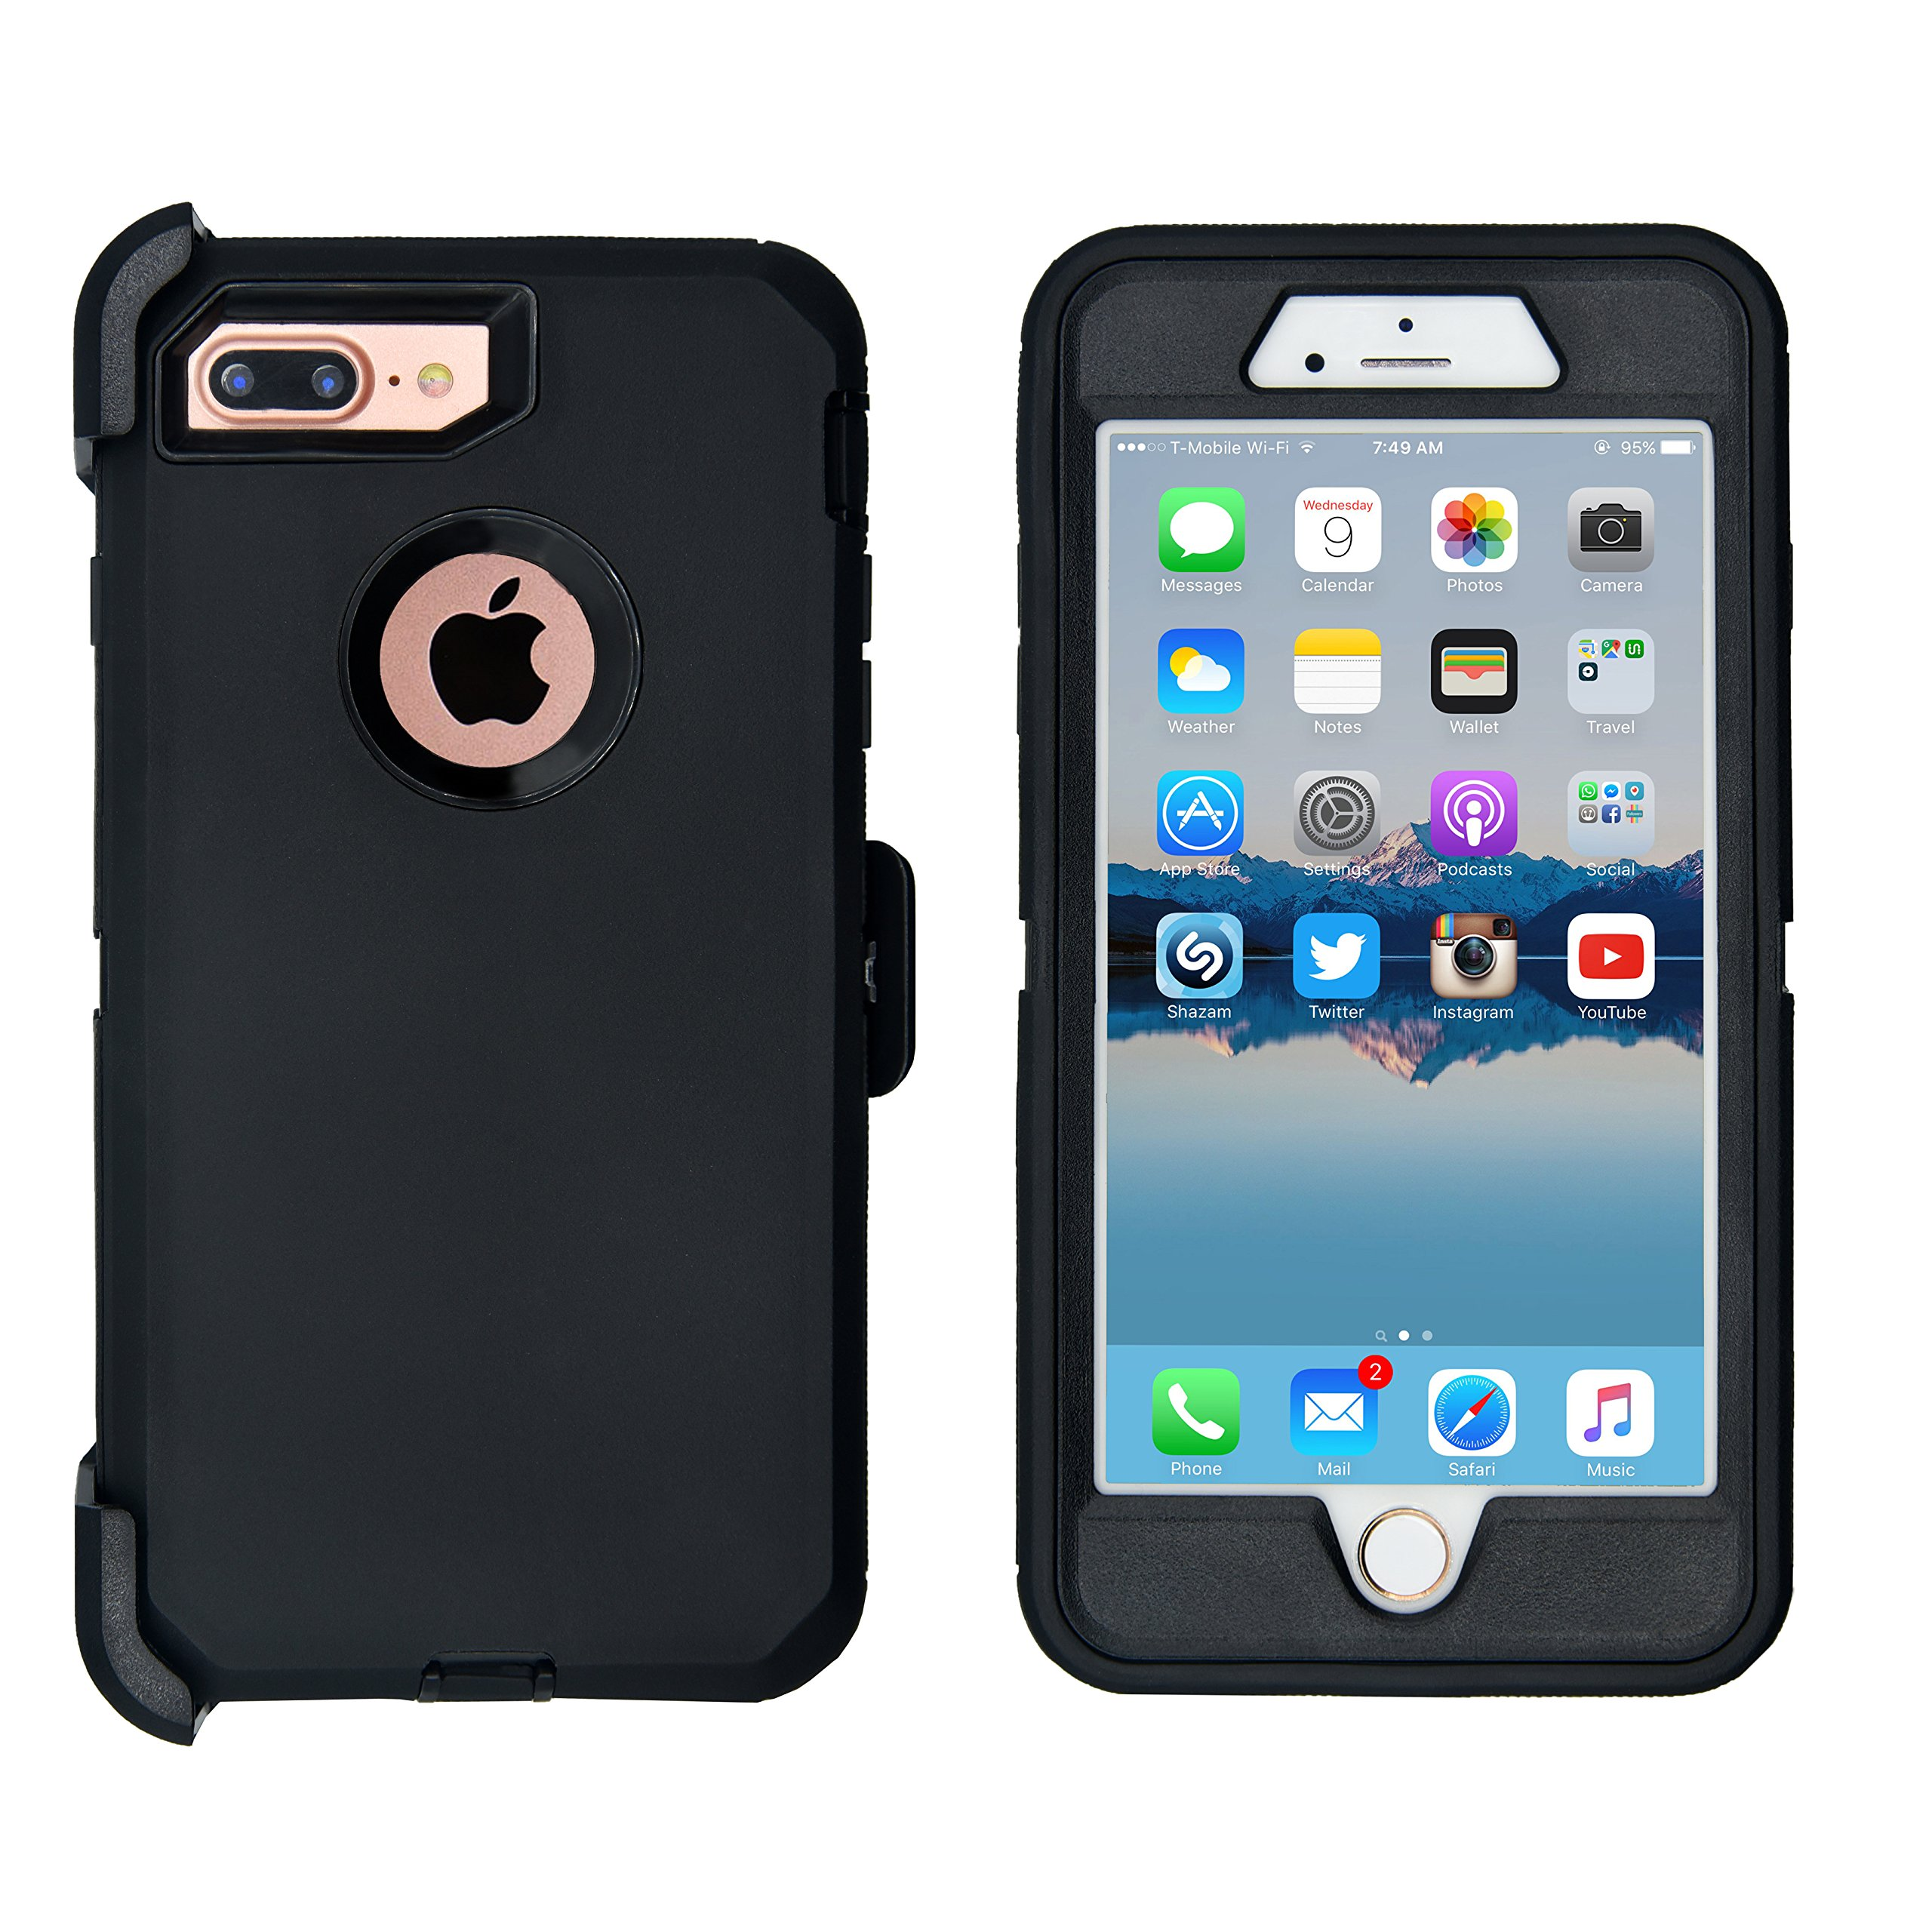 iPhone 7 Plus / 8 Plus Cover | 2-in-1 Screen Protector & Holster Case | Full Body, Military Grade Edge-to-Edge Protection with carrying belt clip Black / Black by AlphaCell (Image #3)